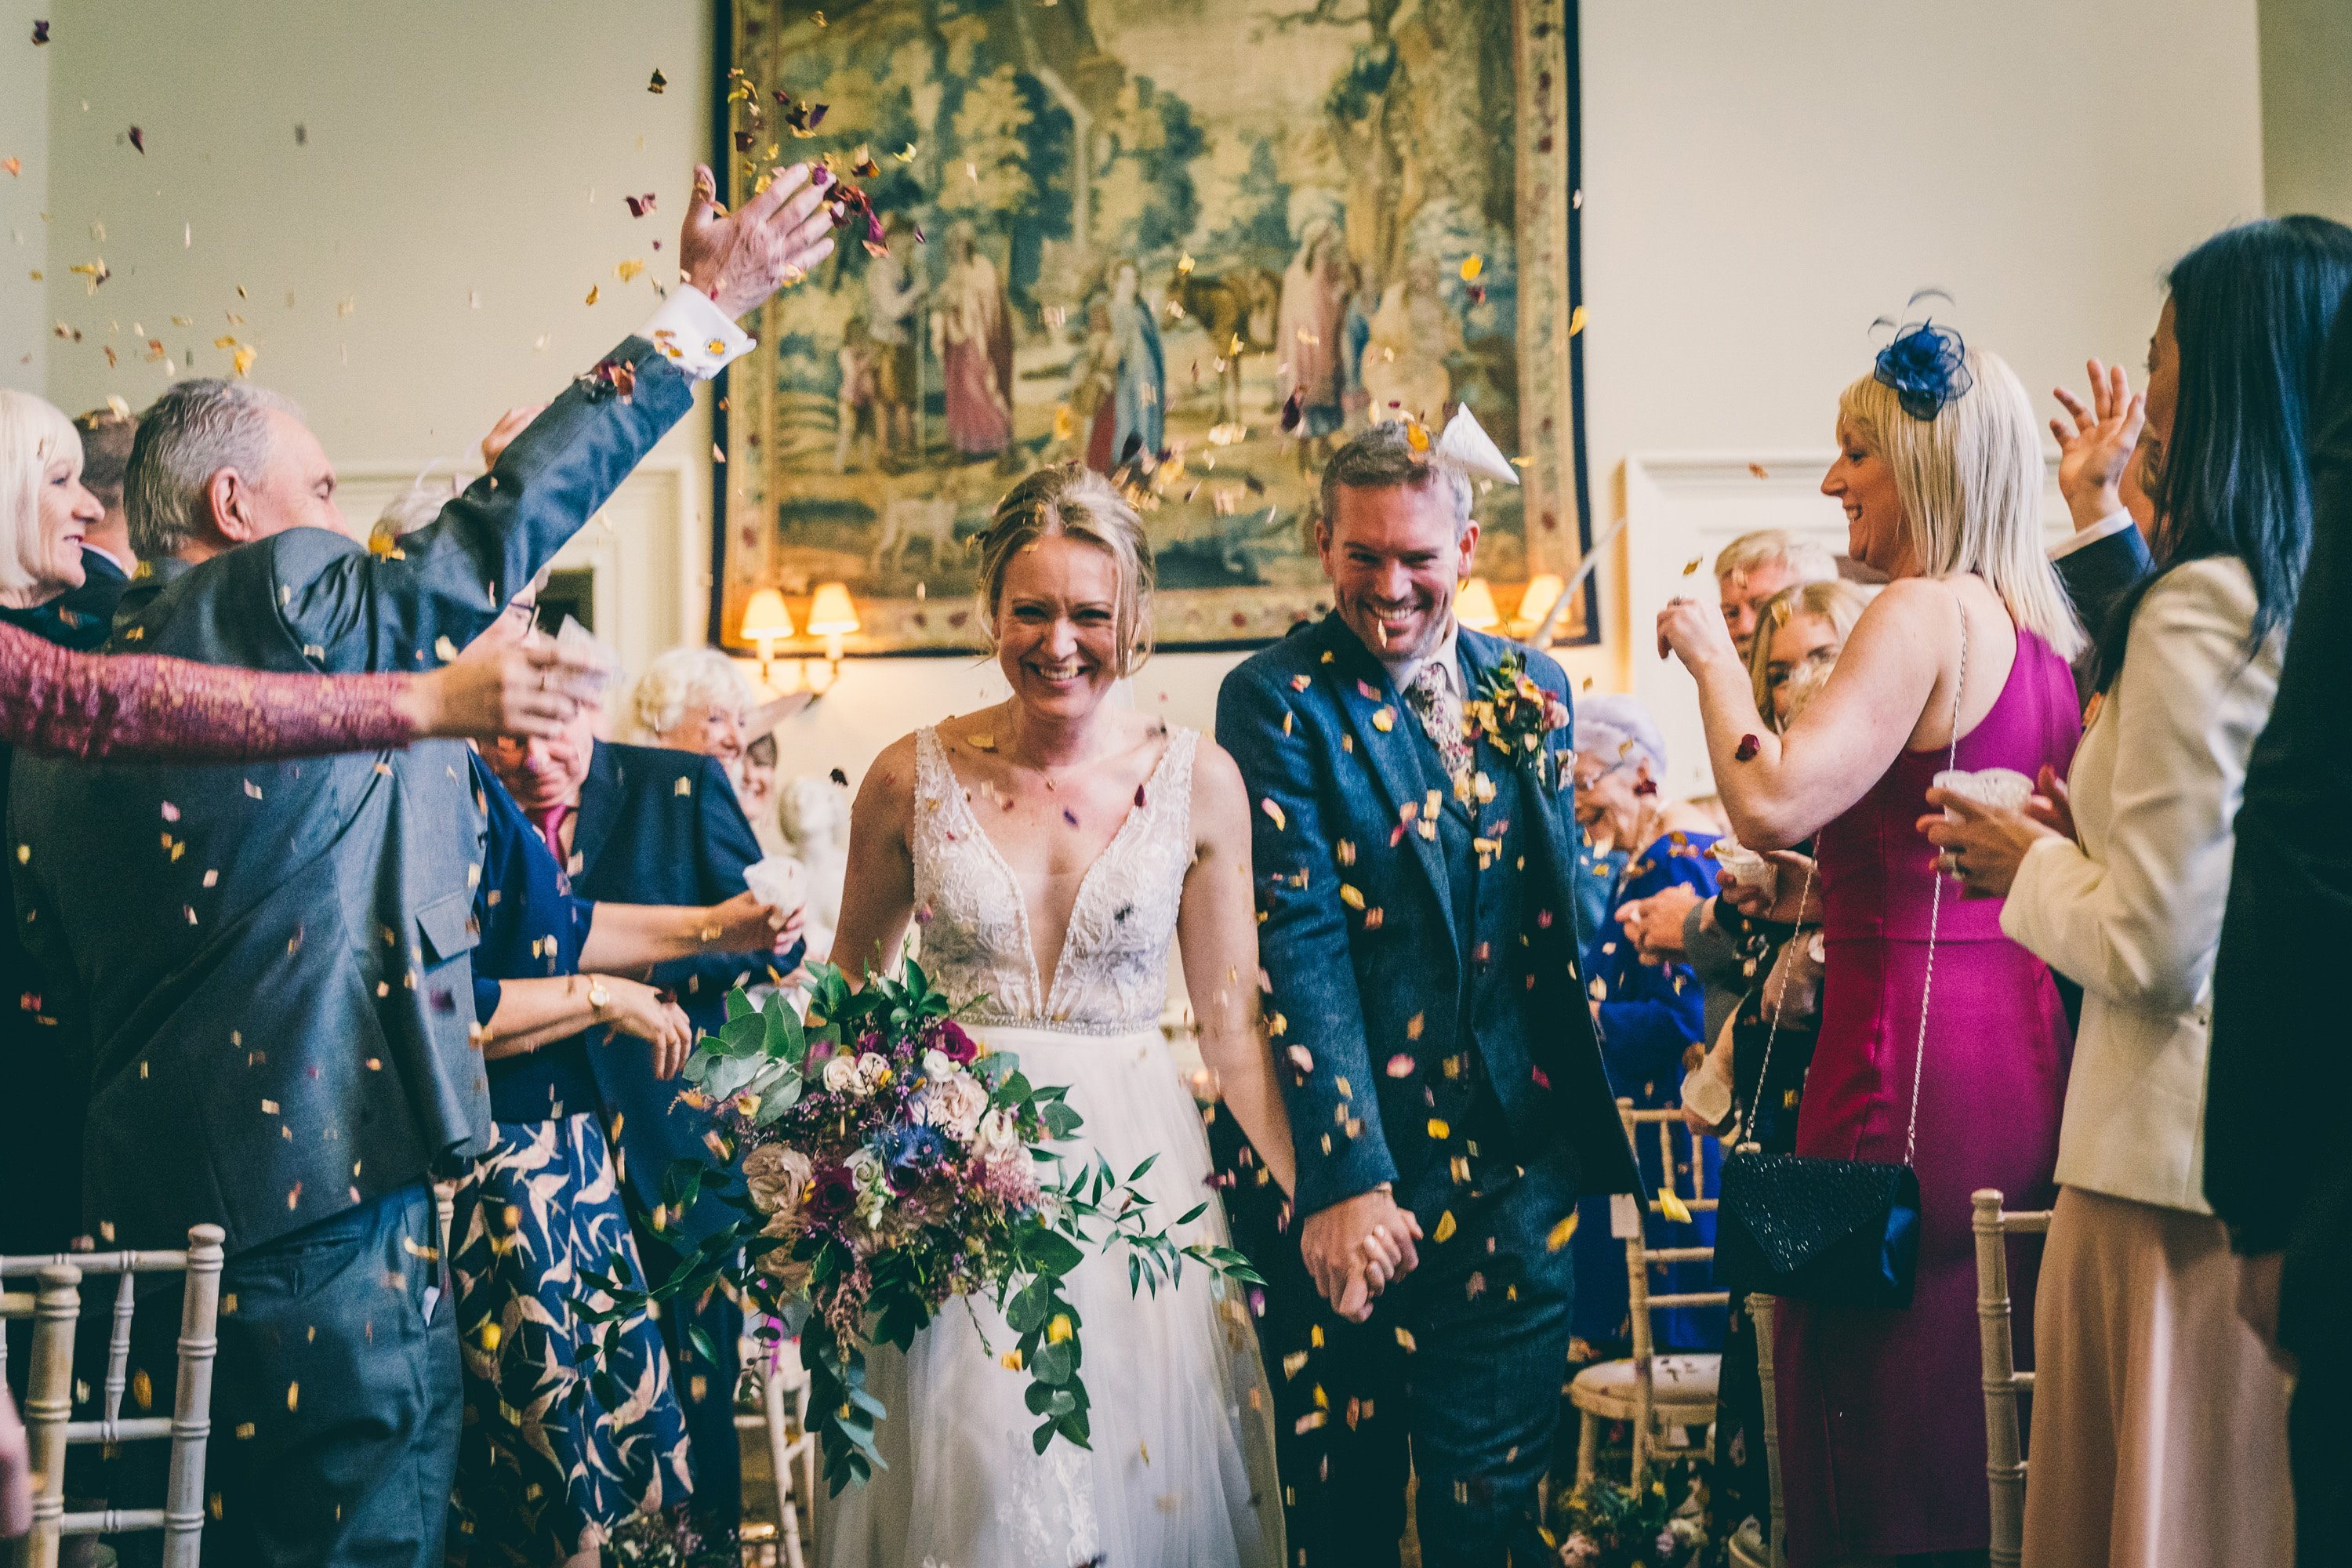 colourful wedding in the autumn